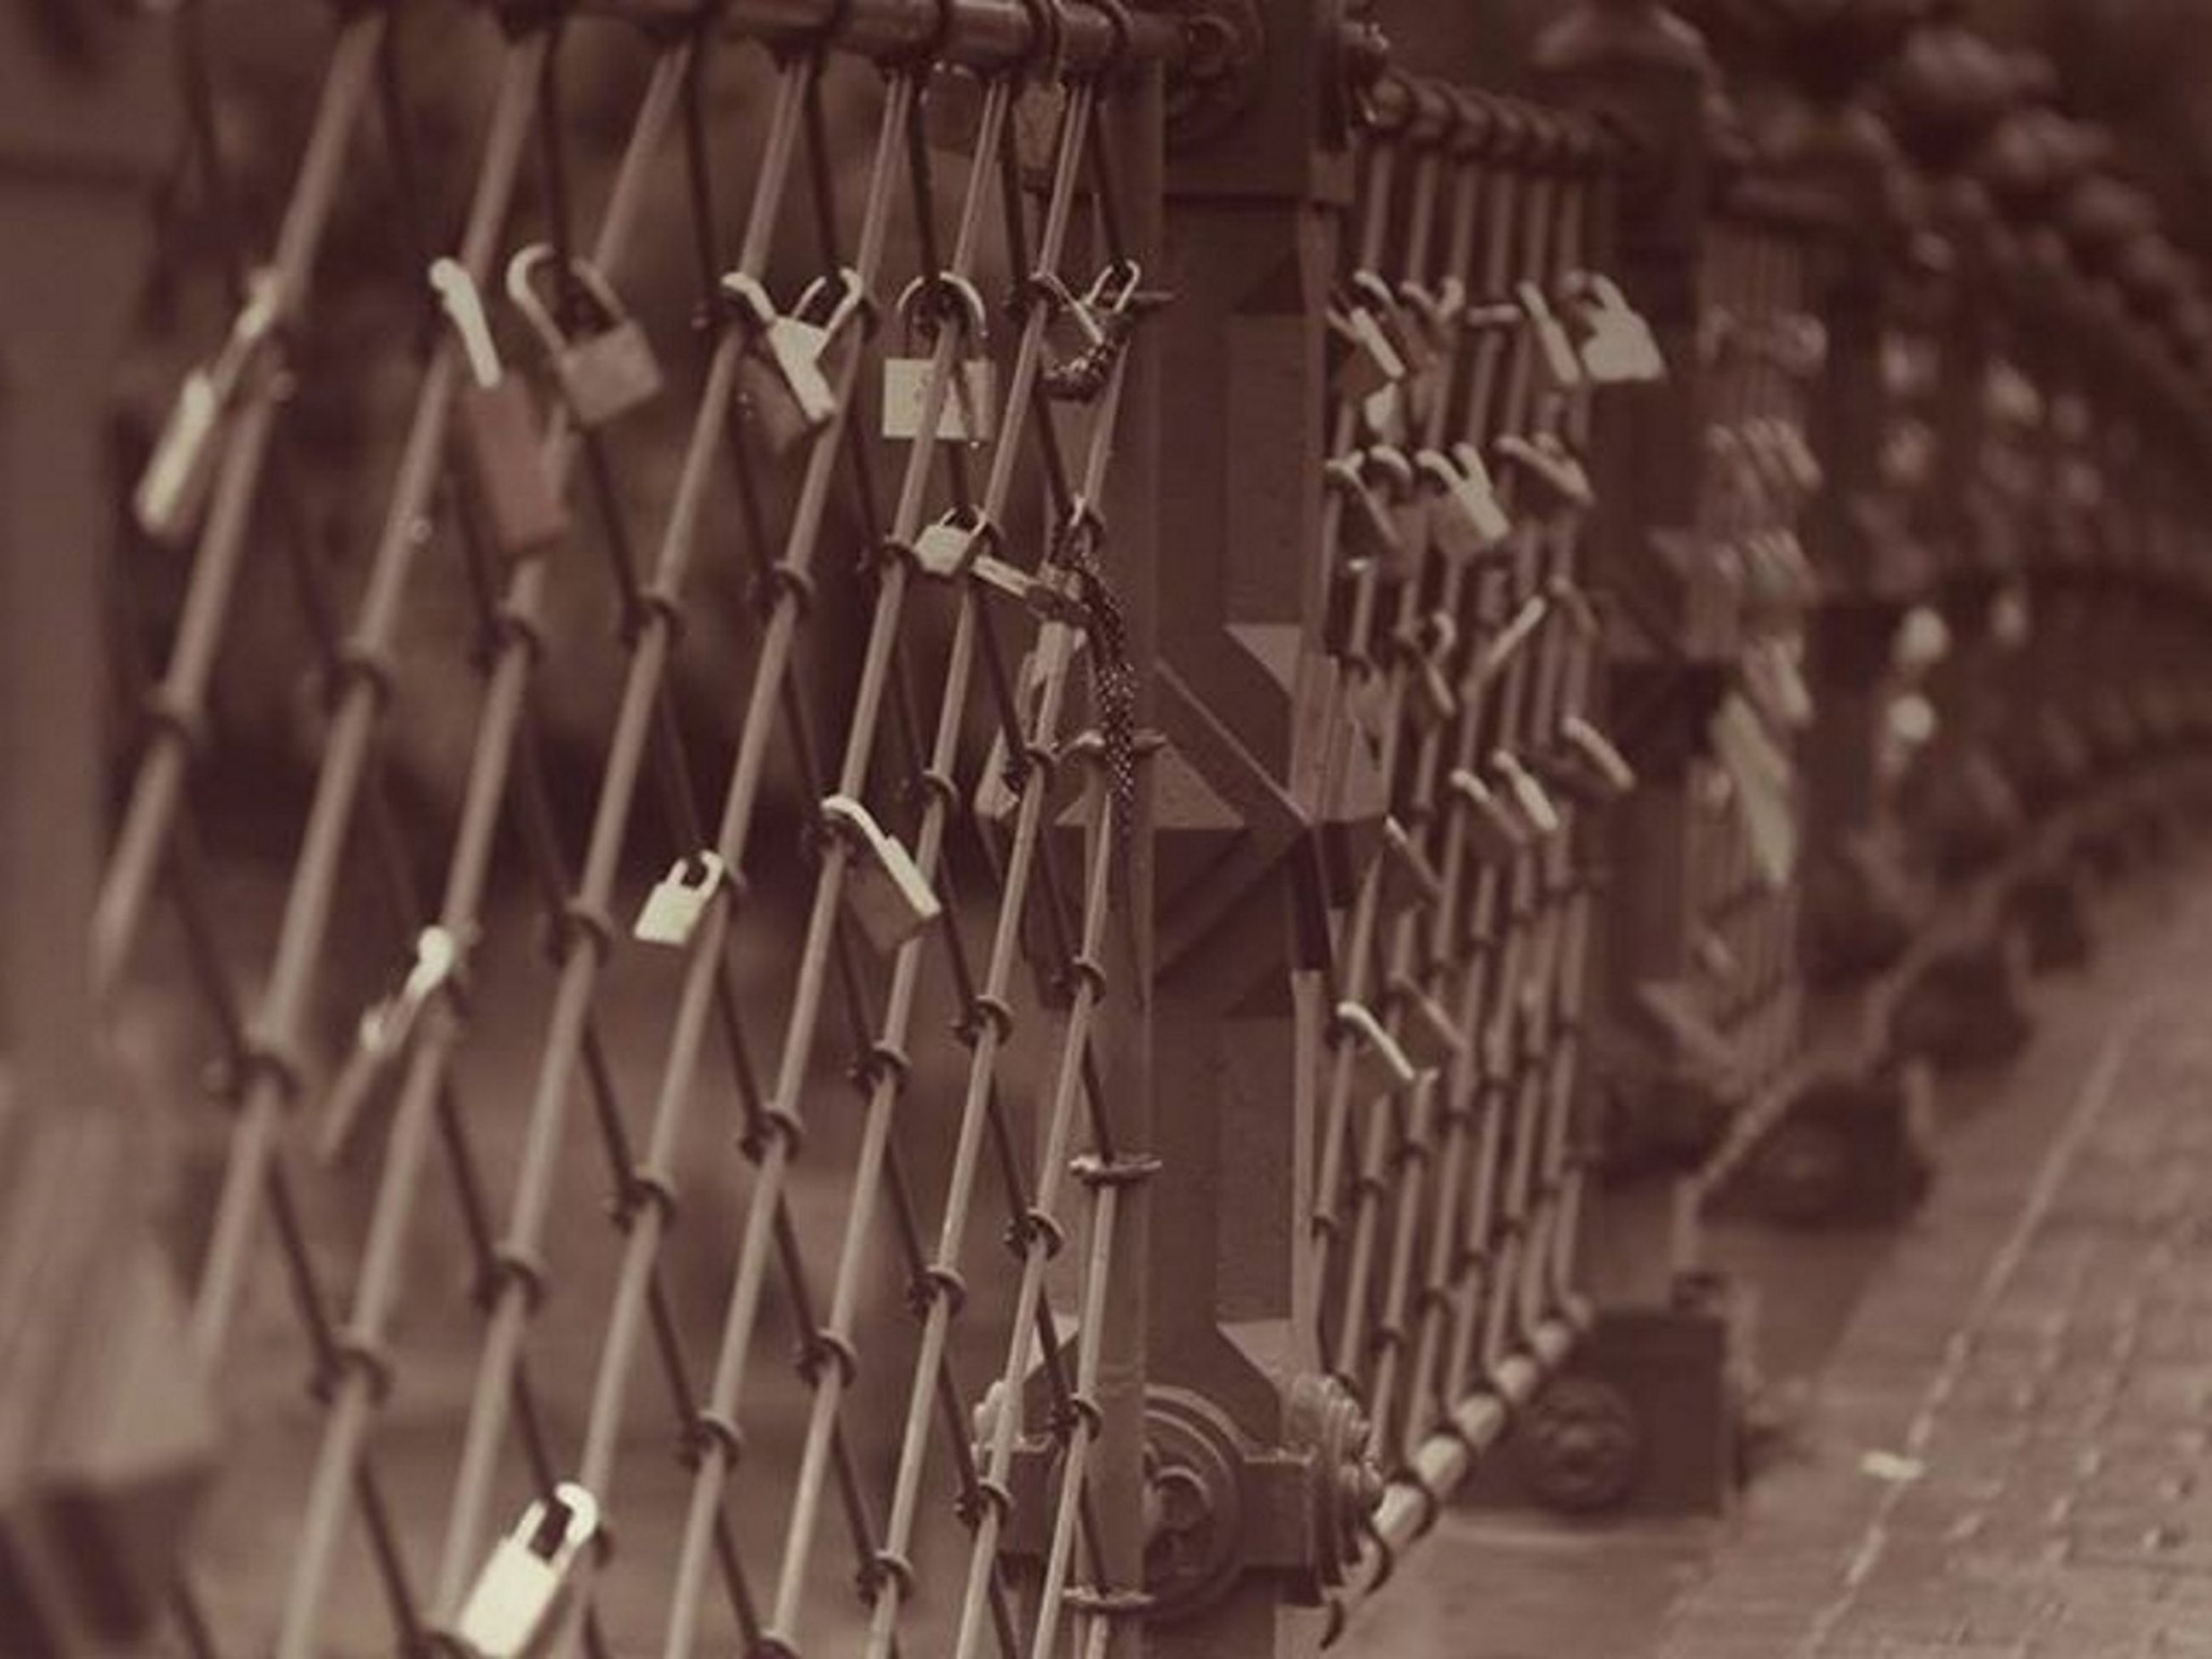 metal, indoors, built structure, wall - building feature, architecture, pattern, design, metallic, protection, close-up, security, safety, gate, no people, old, focus on foreground, fence, building exterior, day, hanging